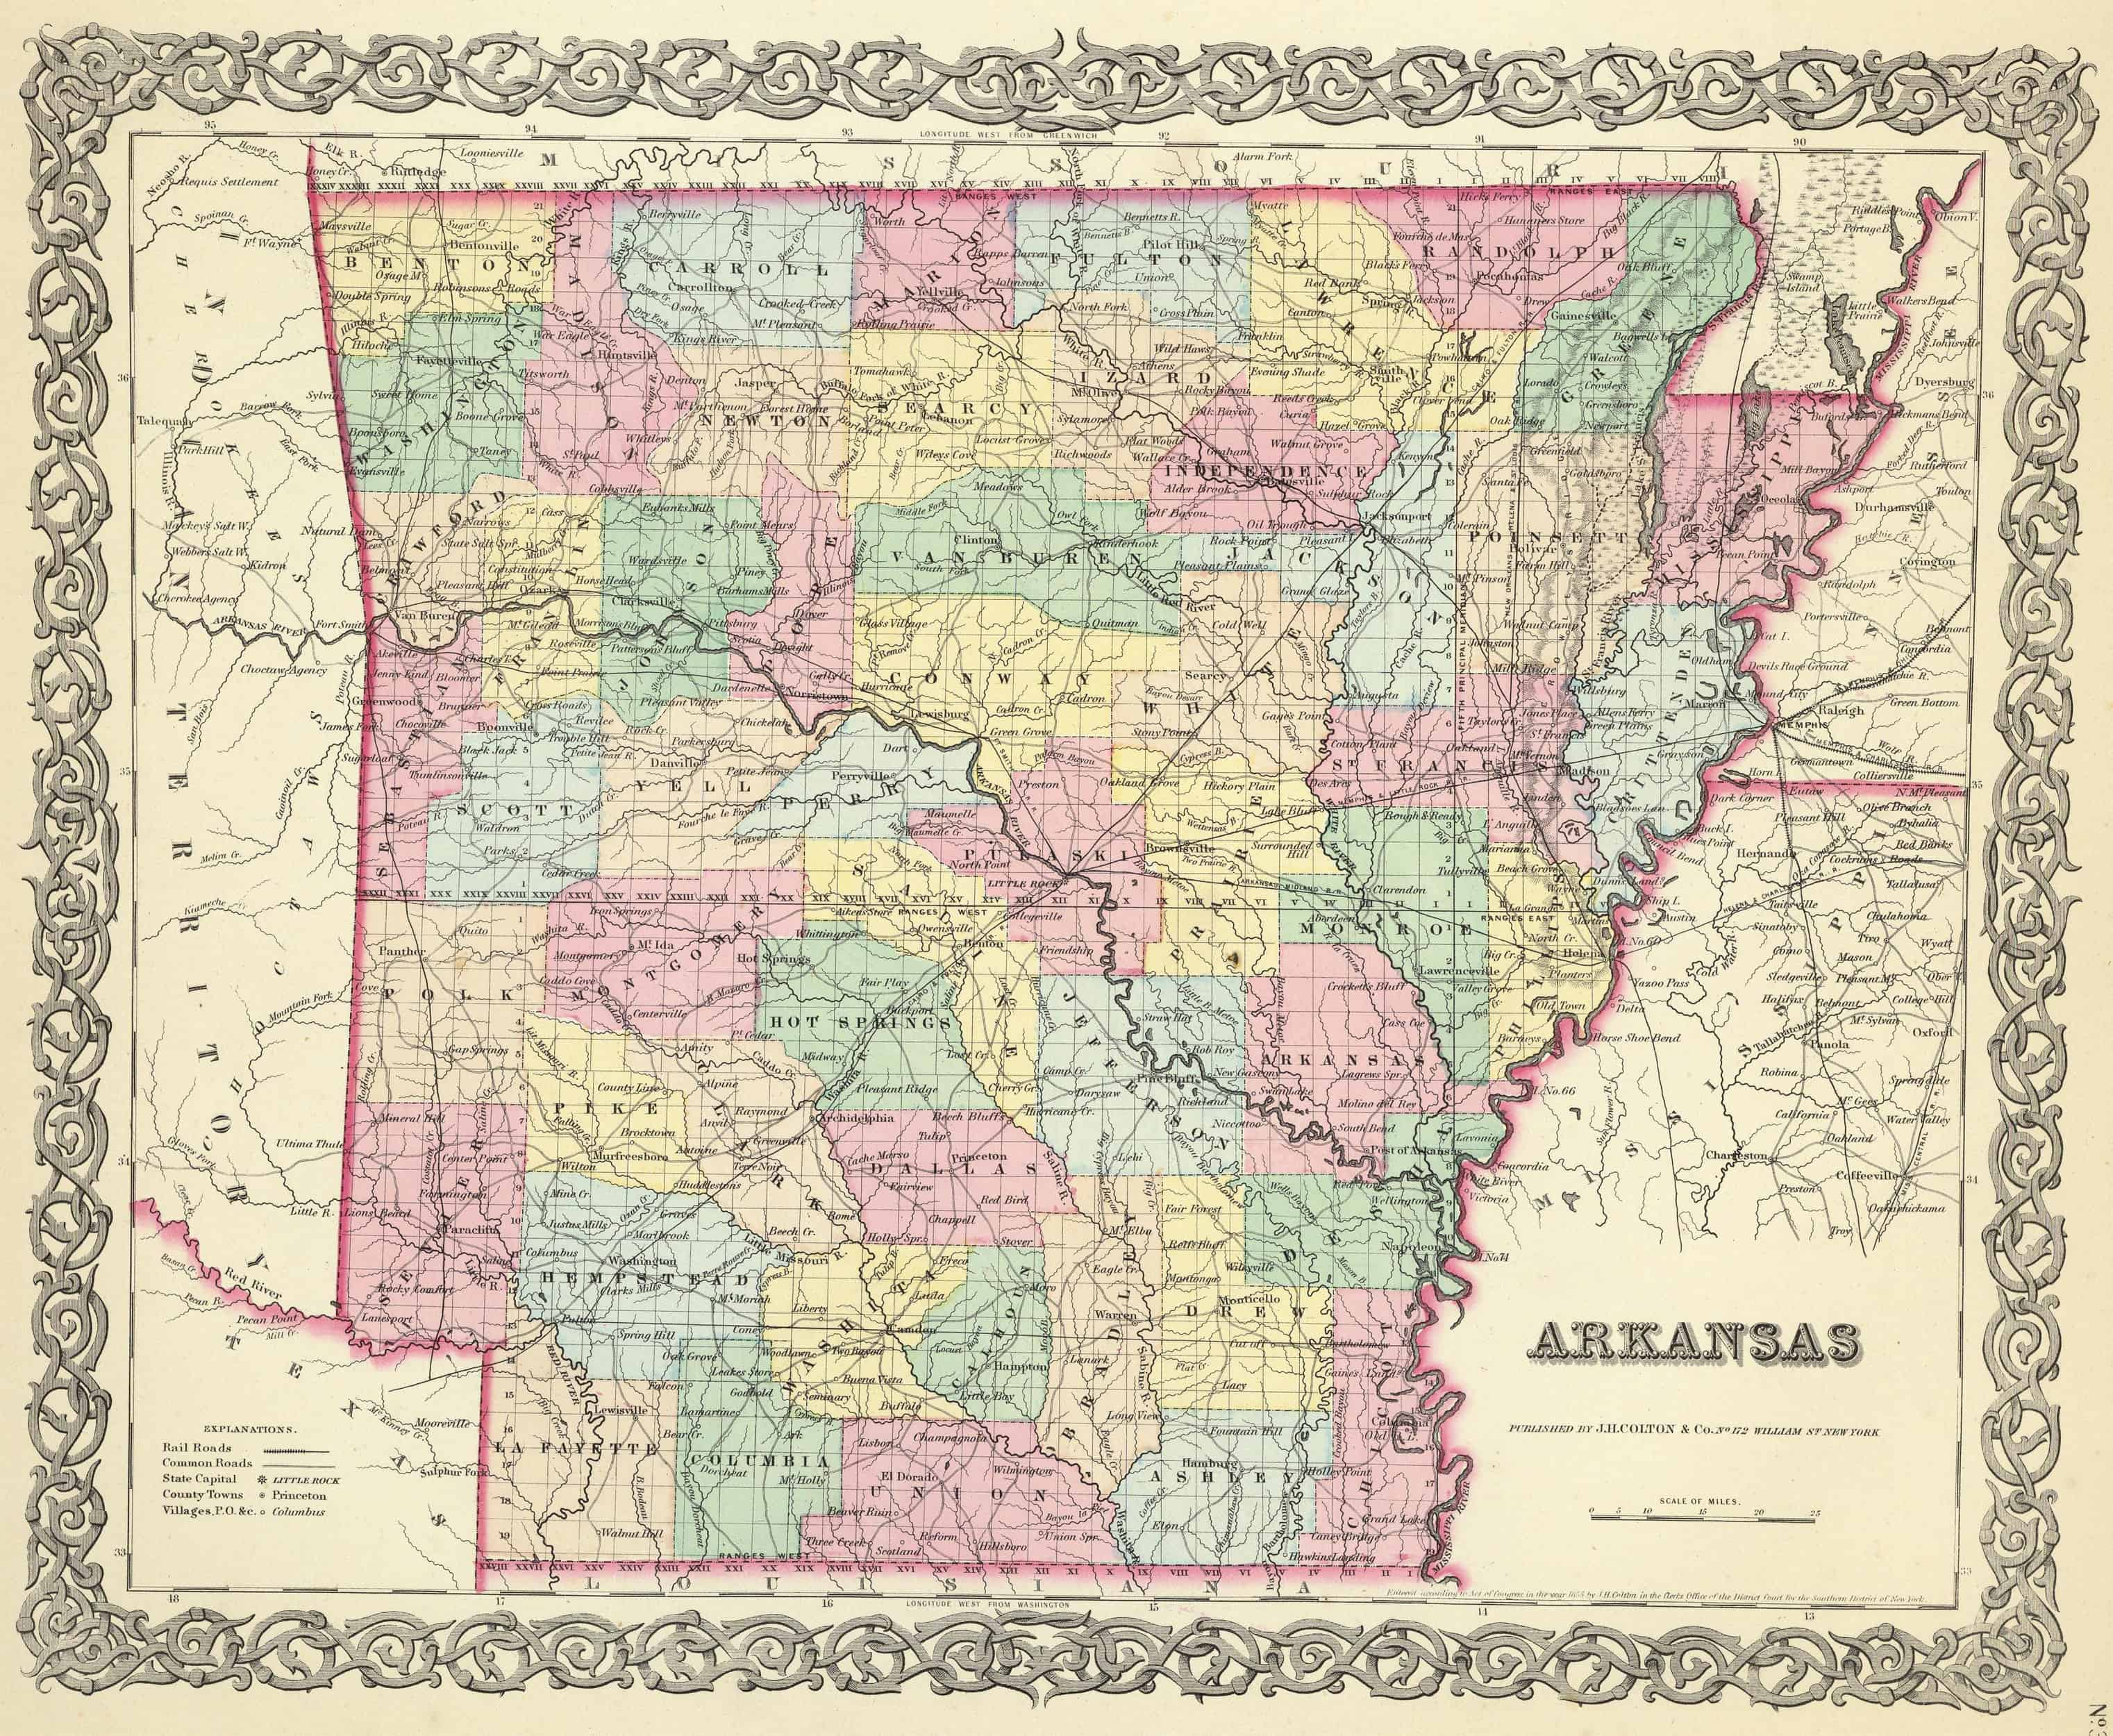 Old Historical City, County and State Maps of Arkansas on map of damascus arkansas, map of washington arkansas, map of wineries in arkansas, map of arkadelphia arkansas, map of arkansas and missouri, map of malvern arkansas, map of all cities in arkansas, map of buffalo river arkansas, map of texarkana arkansas, map of texas and arkansas, map of montgomery pa, towns in polk county arkansas, map of washington county il, maps of creeks in arkansas, map of rogers arkansas, map of east end arkansas, map of mount ida arkansas, map of perryville arkansas, map of oak grove arkansas, detailed map of arkansas,